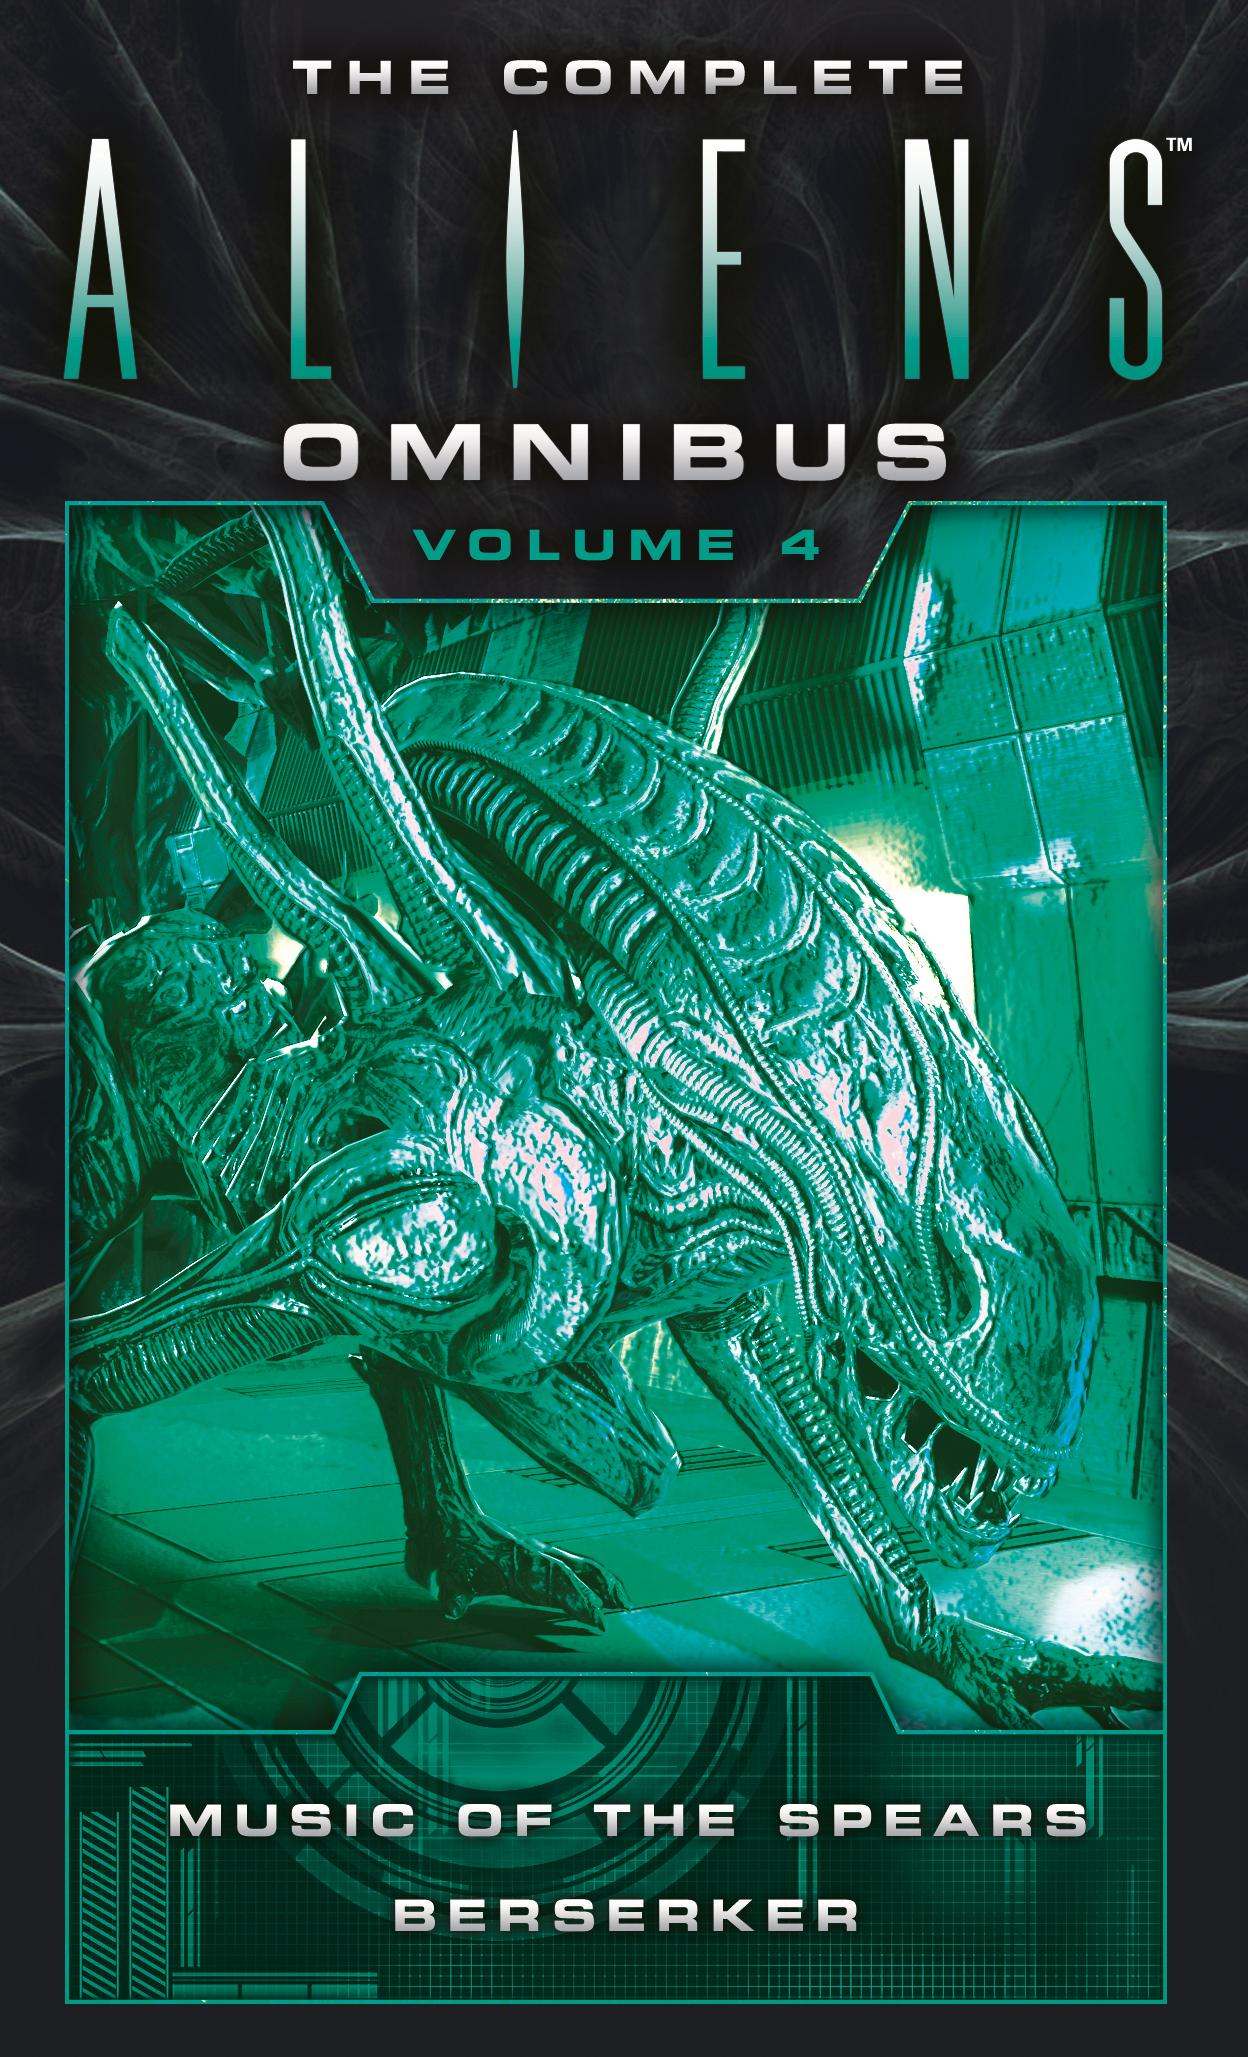 """The Complete Aliens Omnibus: Volume Four (Music of the Spears, Beserker) freedom a documentary history of emancipation 1861a€""""1867 2 volume set"""